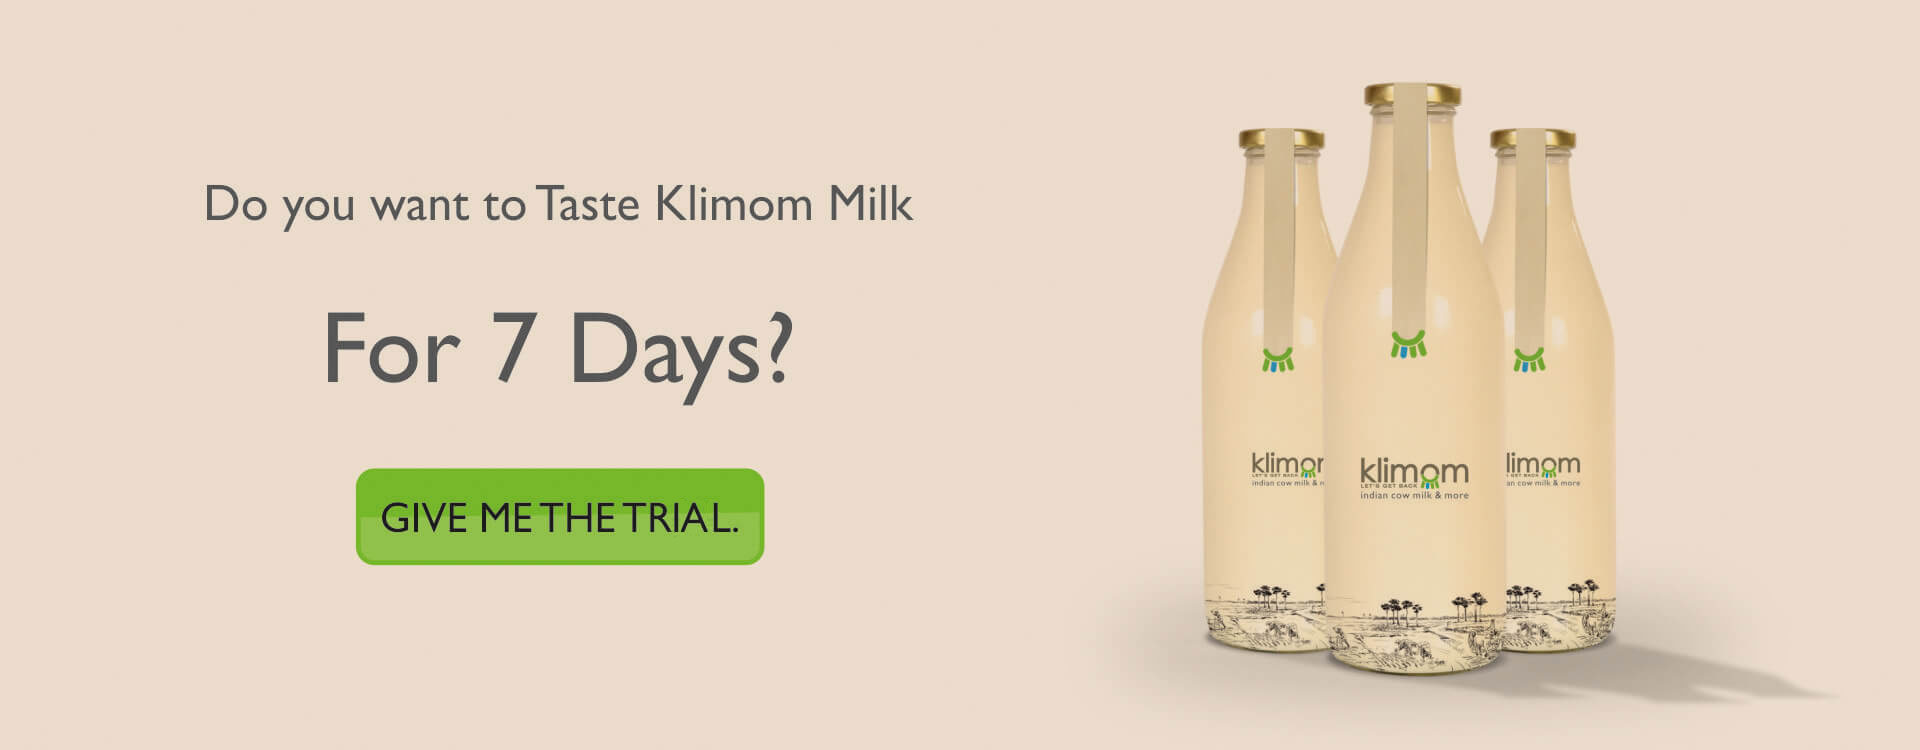 Farm Fresh A2 Milk delivery in Hyderabad | Klimom Pure Desi Milk